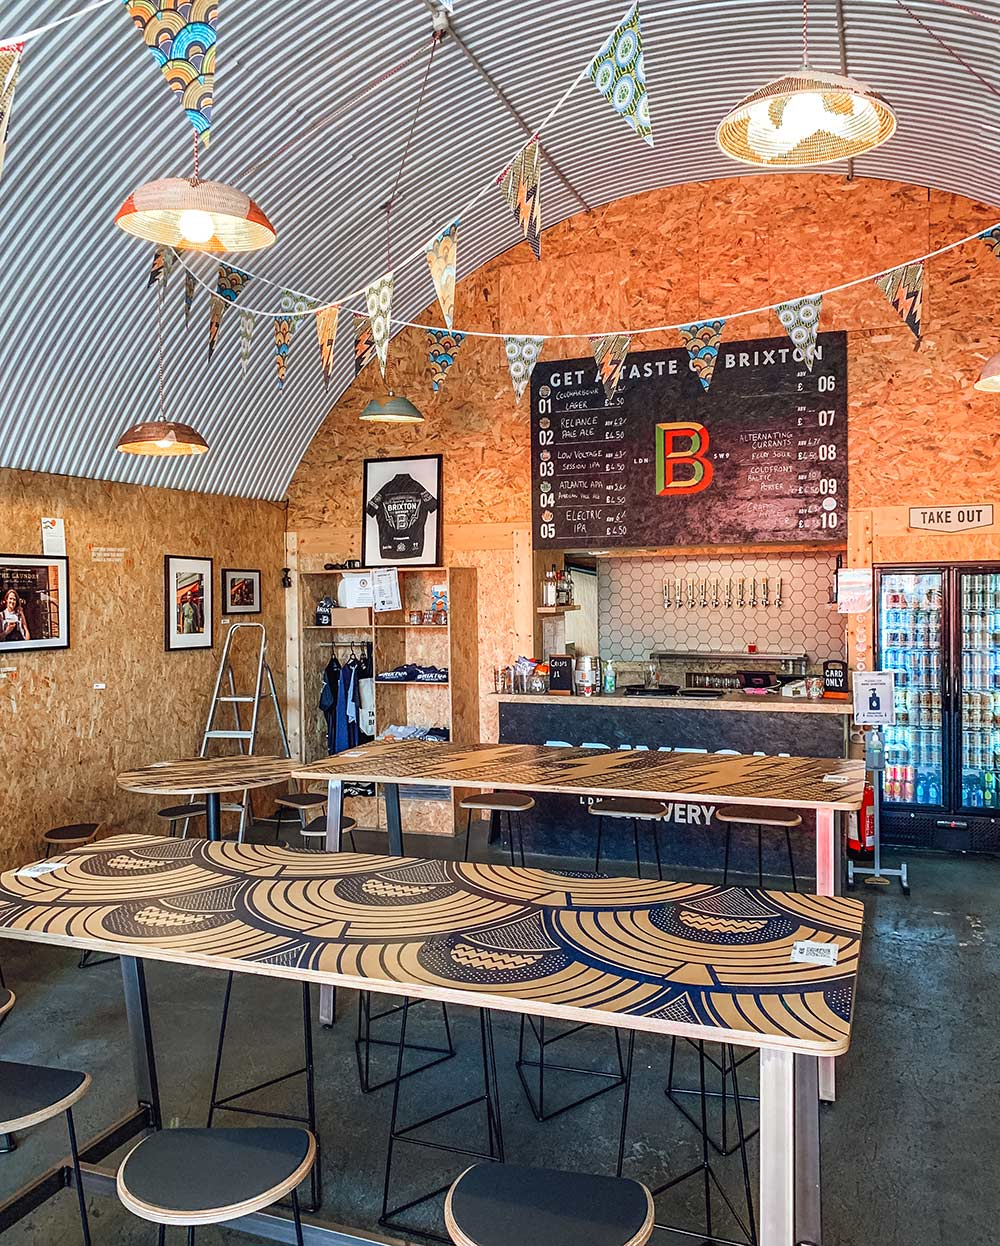 Brixton Brewery Tap Room